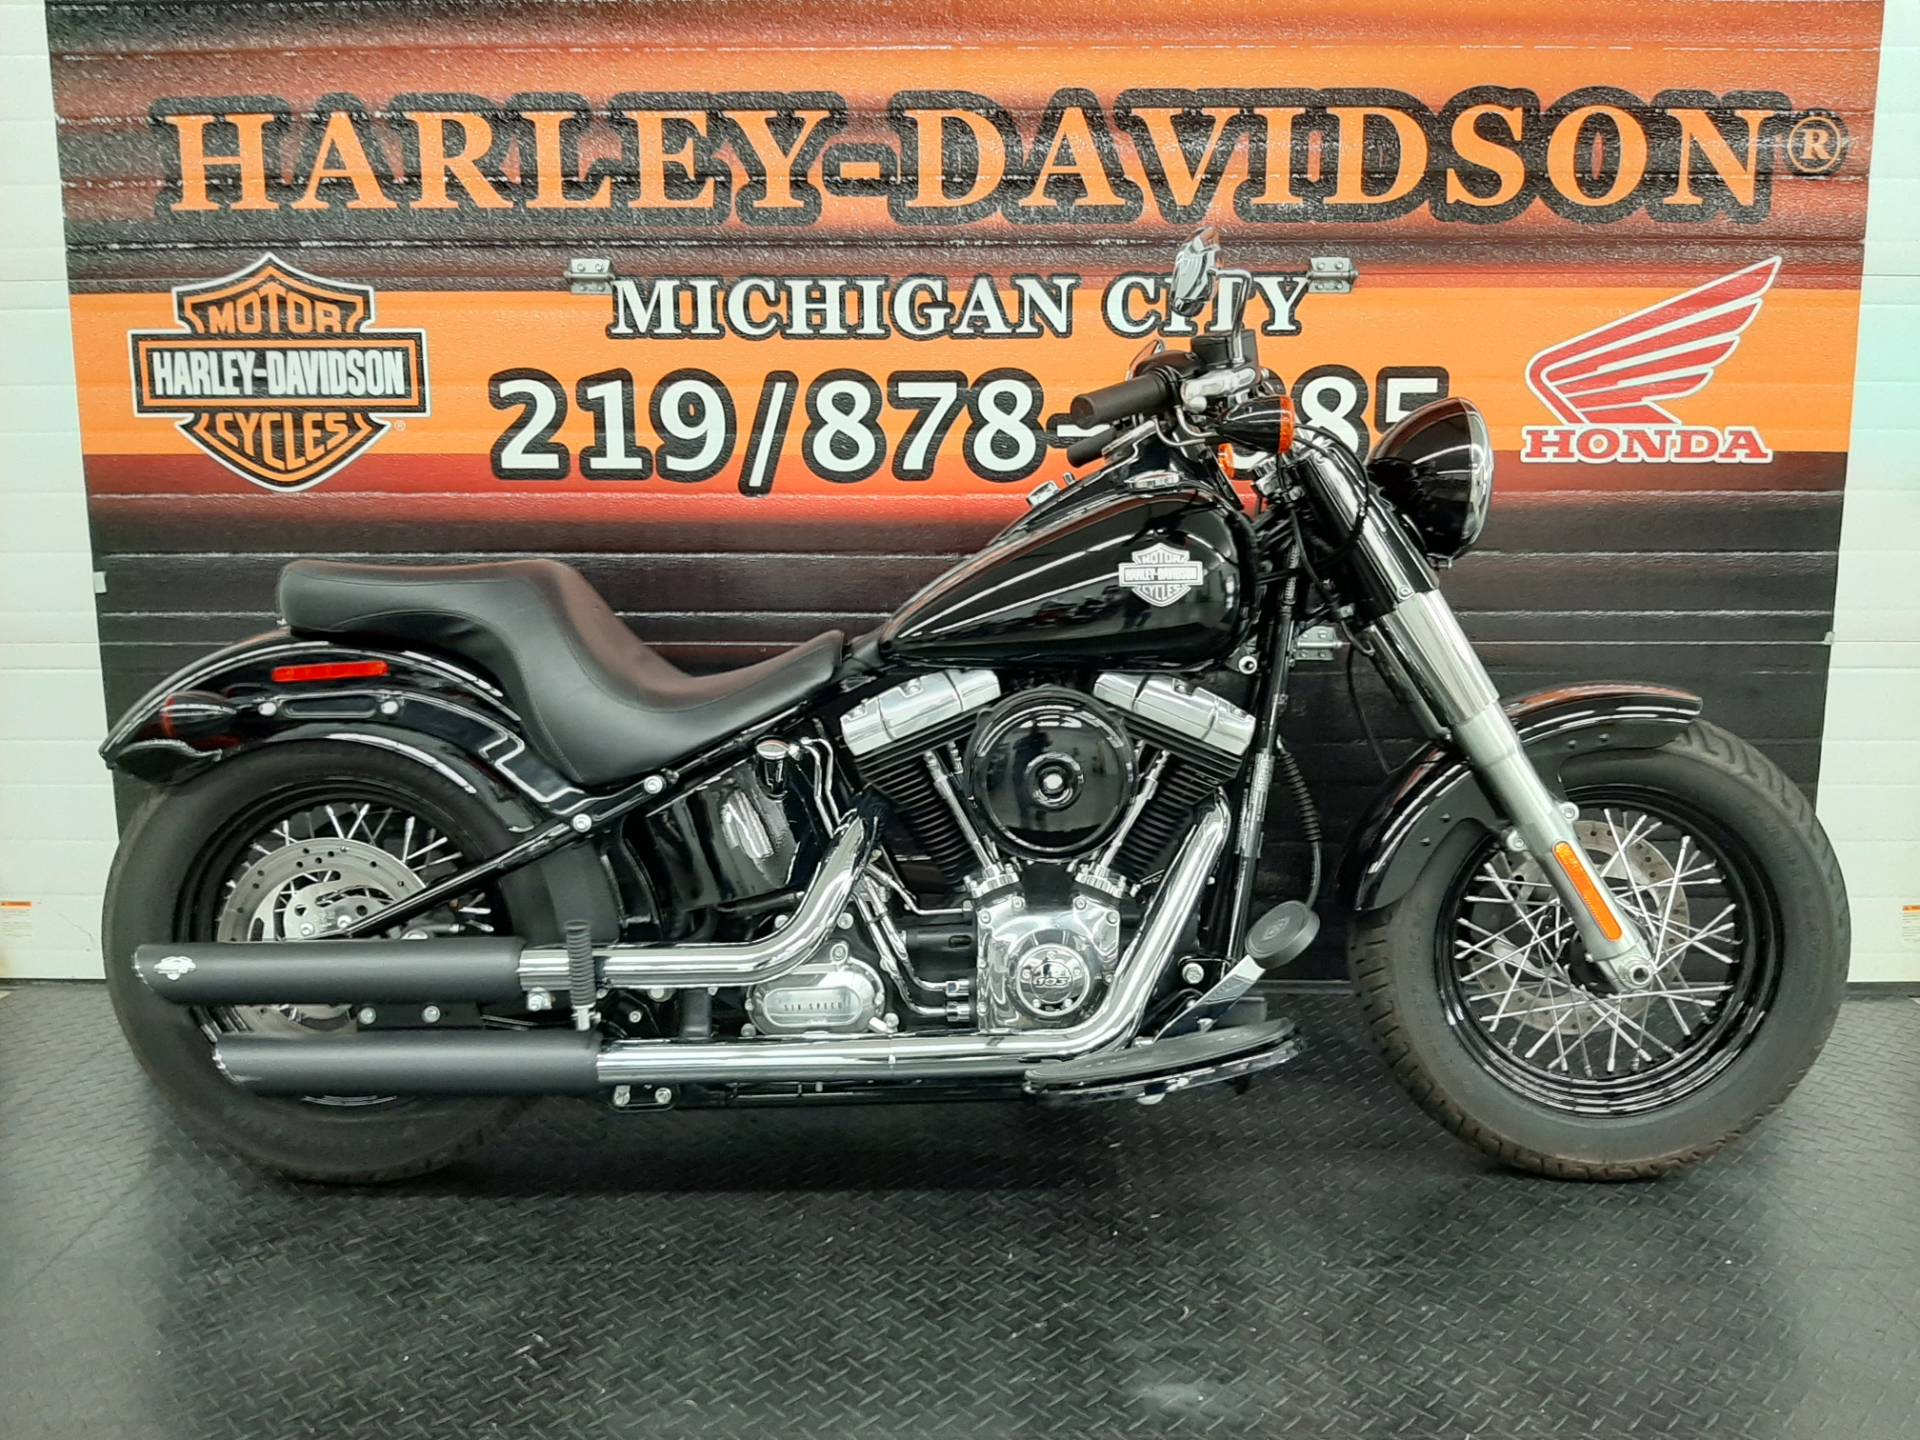 2015 Harley-Davidson Softail®Slim in Michigan City, Indiana - Photo 1